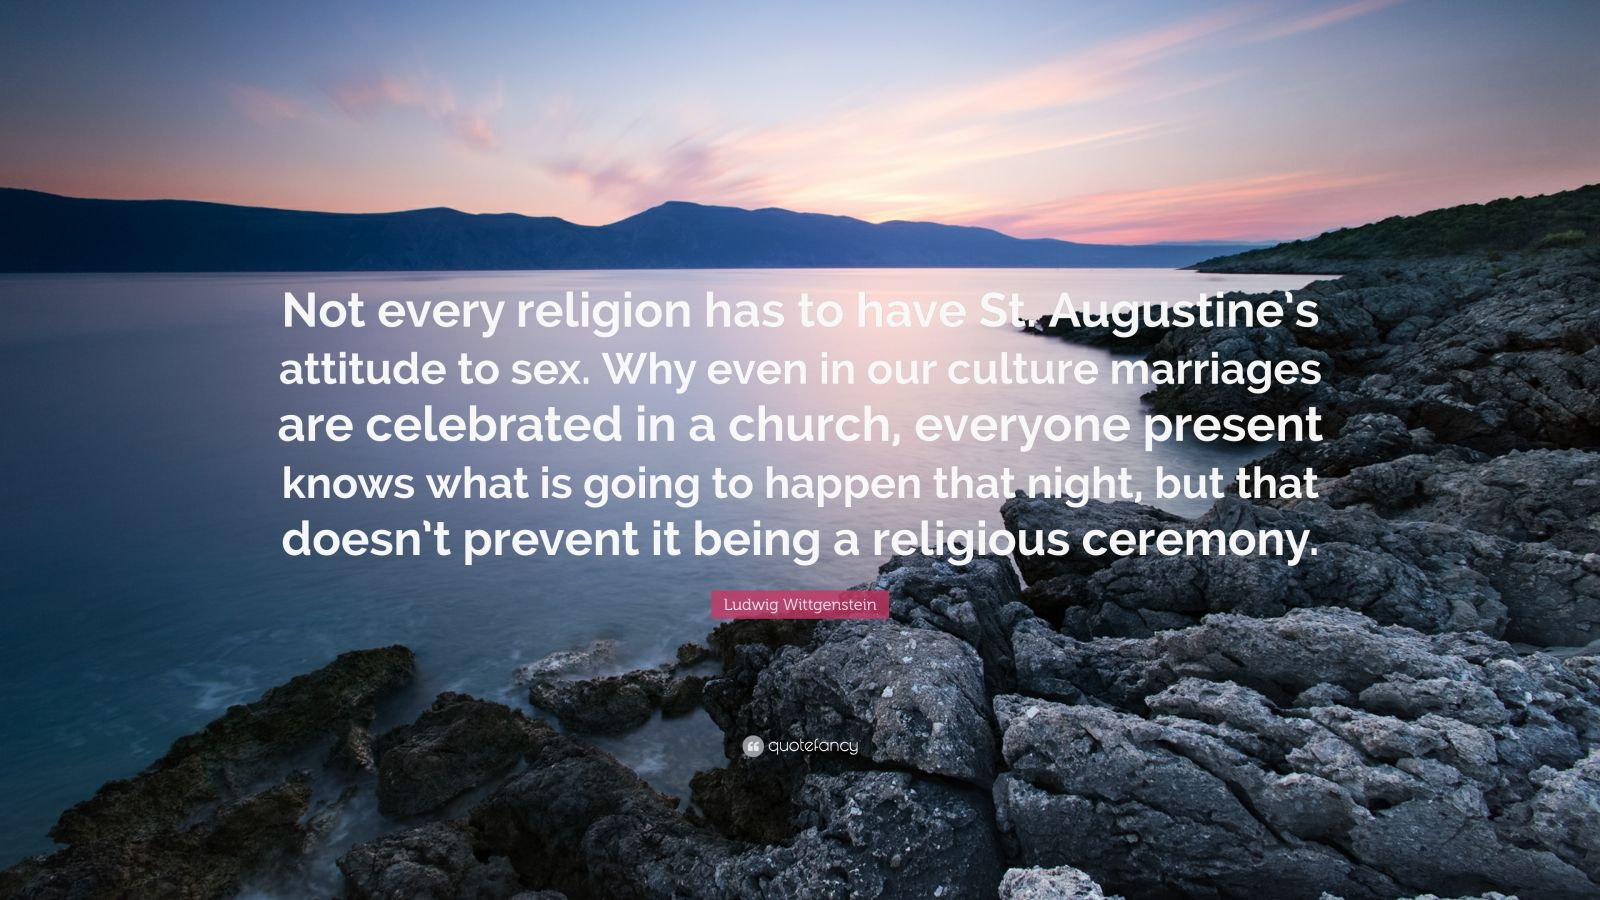 """Ludwig Wittgenstein Quote: """"Not every religion has to have St. Augustine's attitude to sex. Why even in our culture marriages are celebrated in a church, everyone present knows what is going to happen that night, but that doesn't prevent it being a religious ceremony."""""""